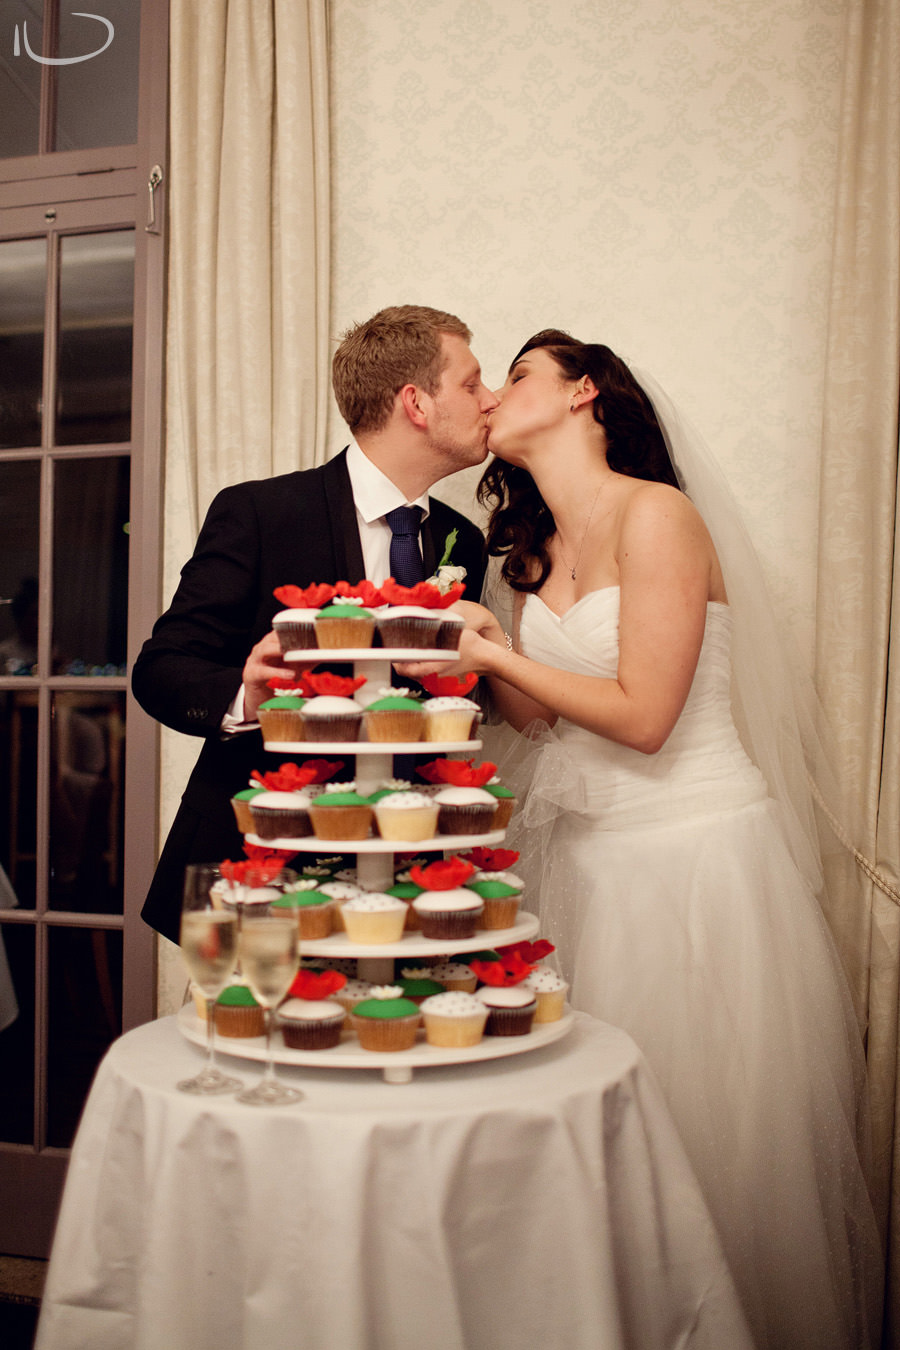 Gunners Barracks Wedding Photographer: Bride & groom kiss after cake cutting